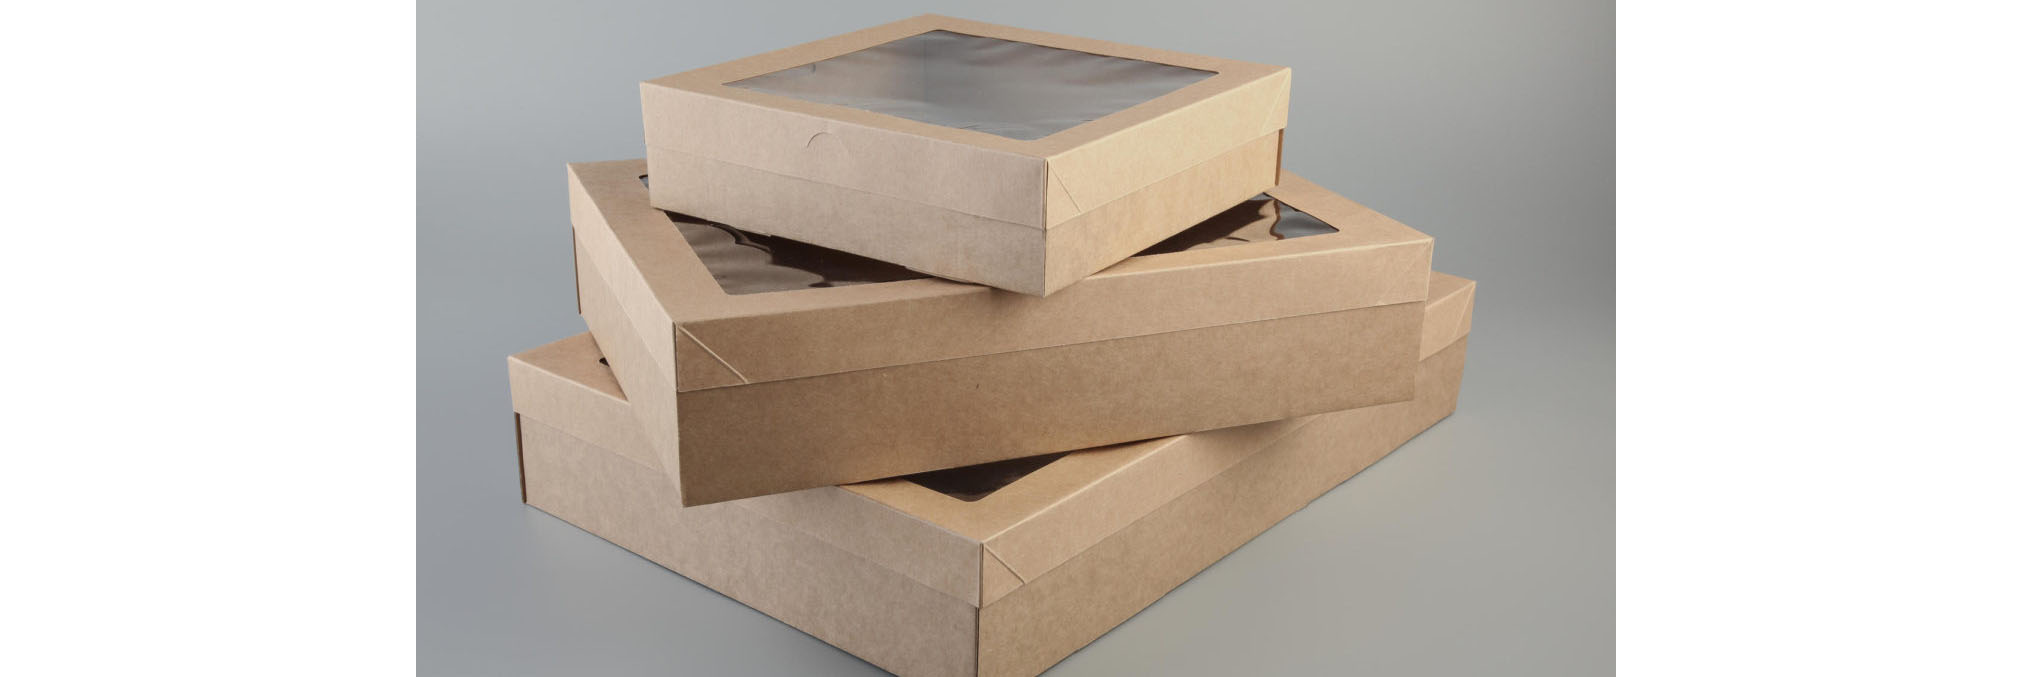 Check Out Our New BetaCater™ Catering Boxes